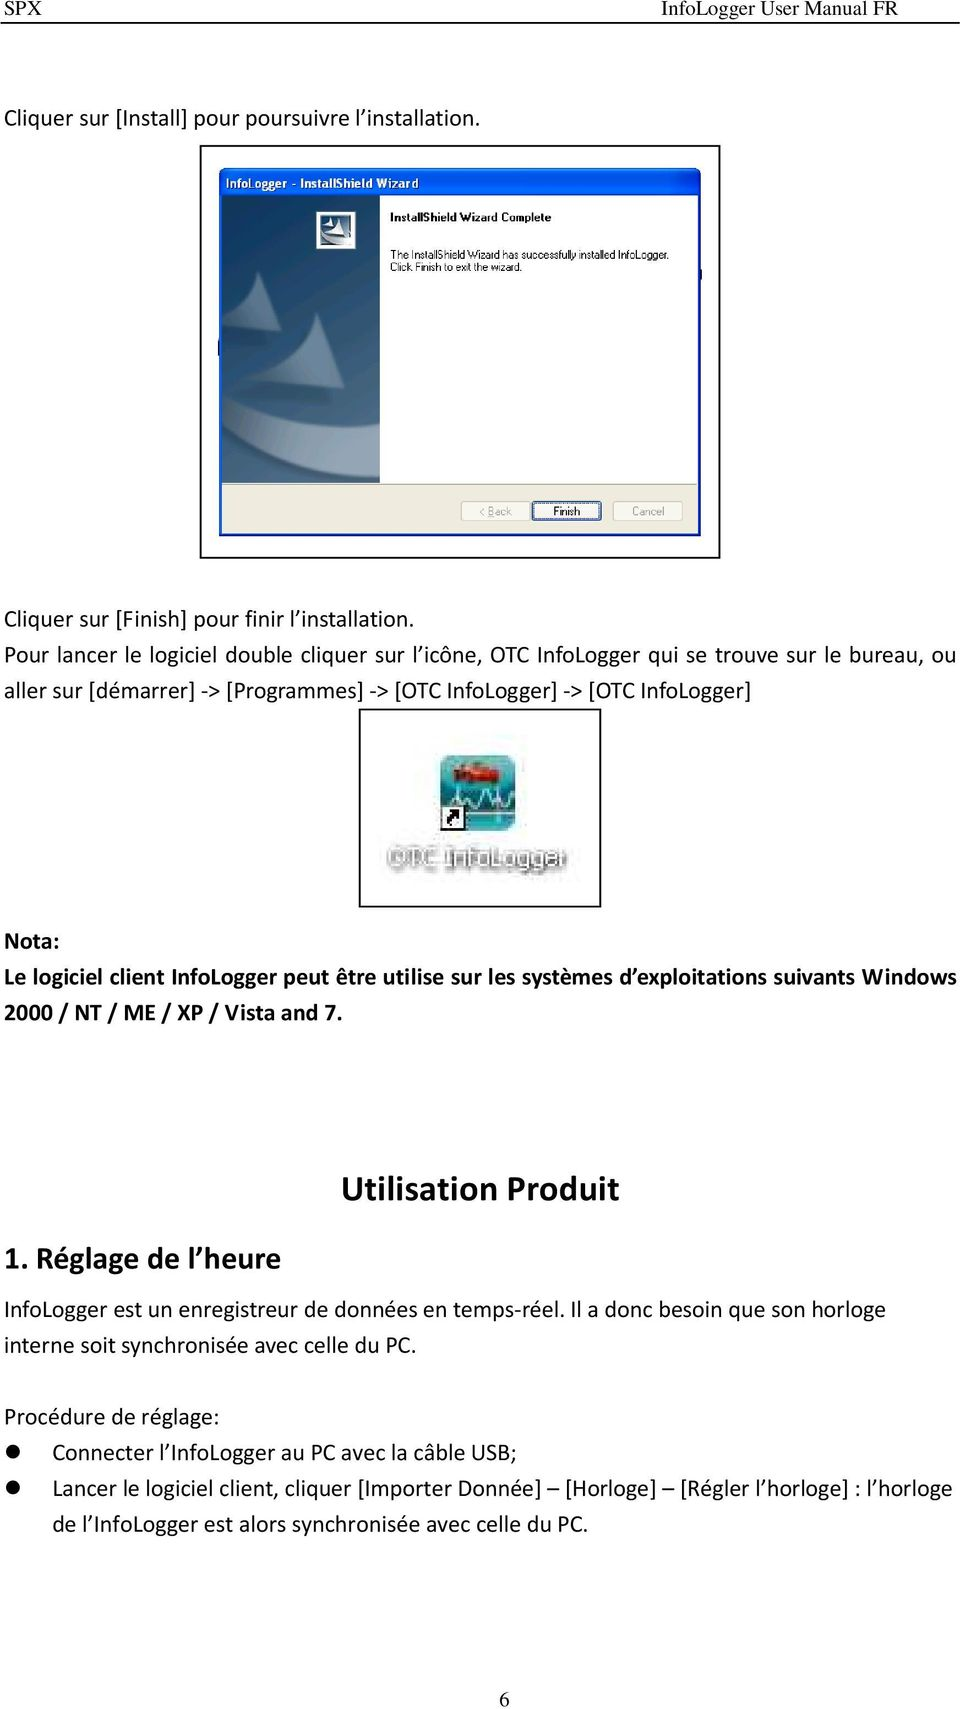 Infologger user manual fr infologger manuel d utilisation - Horloge sur le bureau windows 7 ...